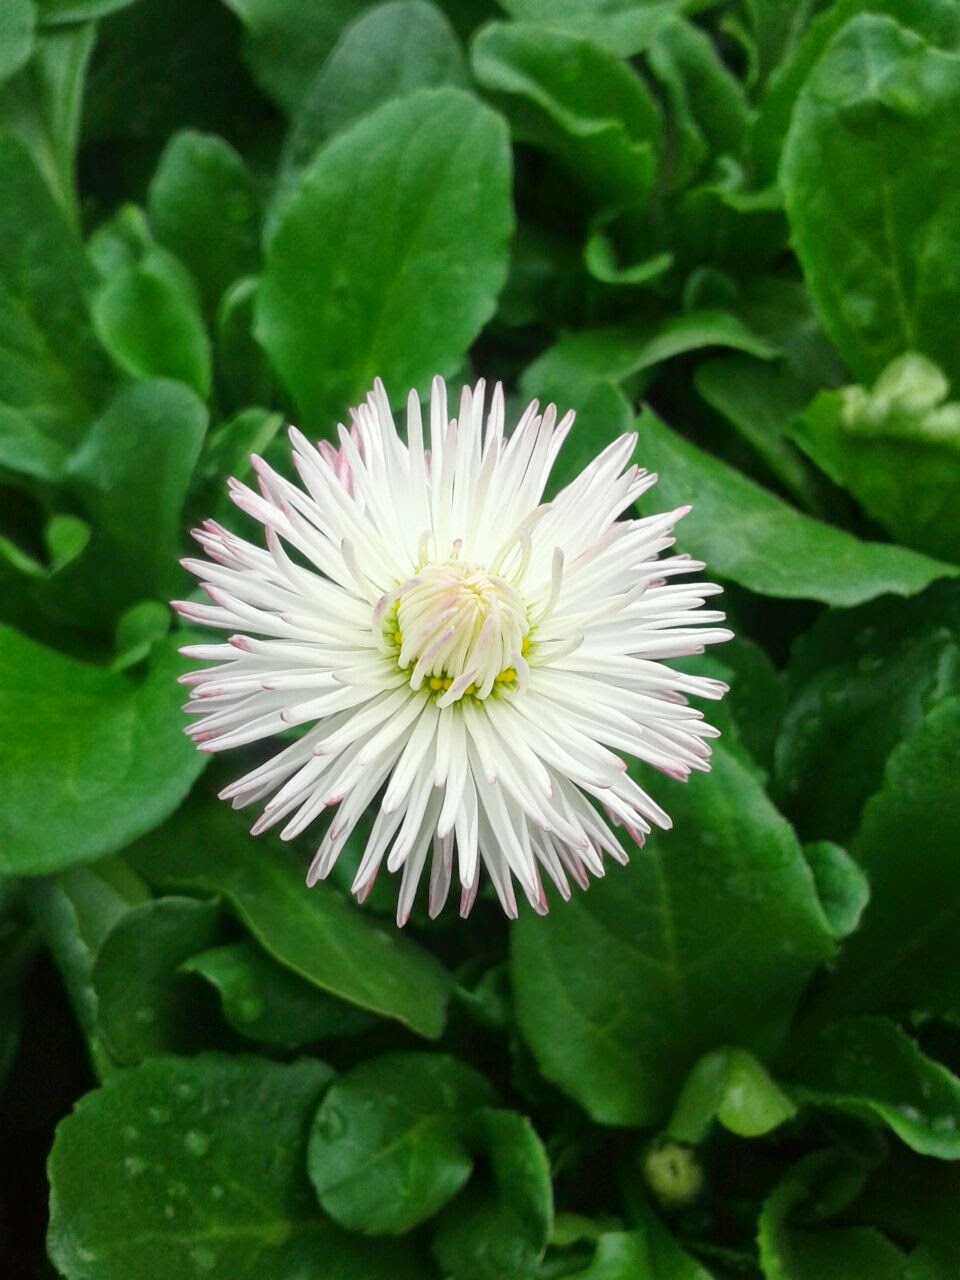 Gogardennow english daisy bellis perennis the flower of english daisy bellis perennis the flower of innocence and healing izmirmasajfo